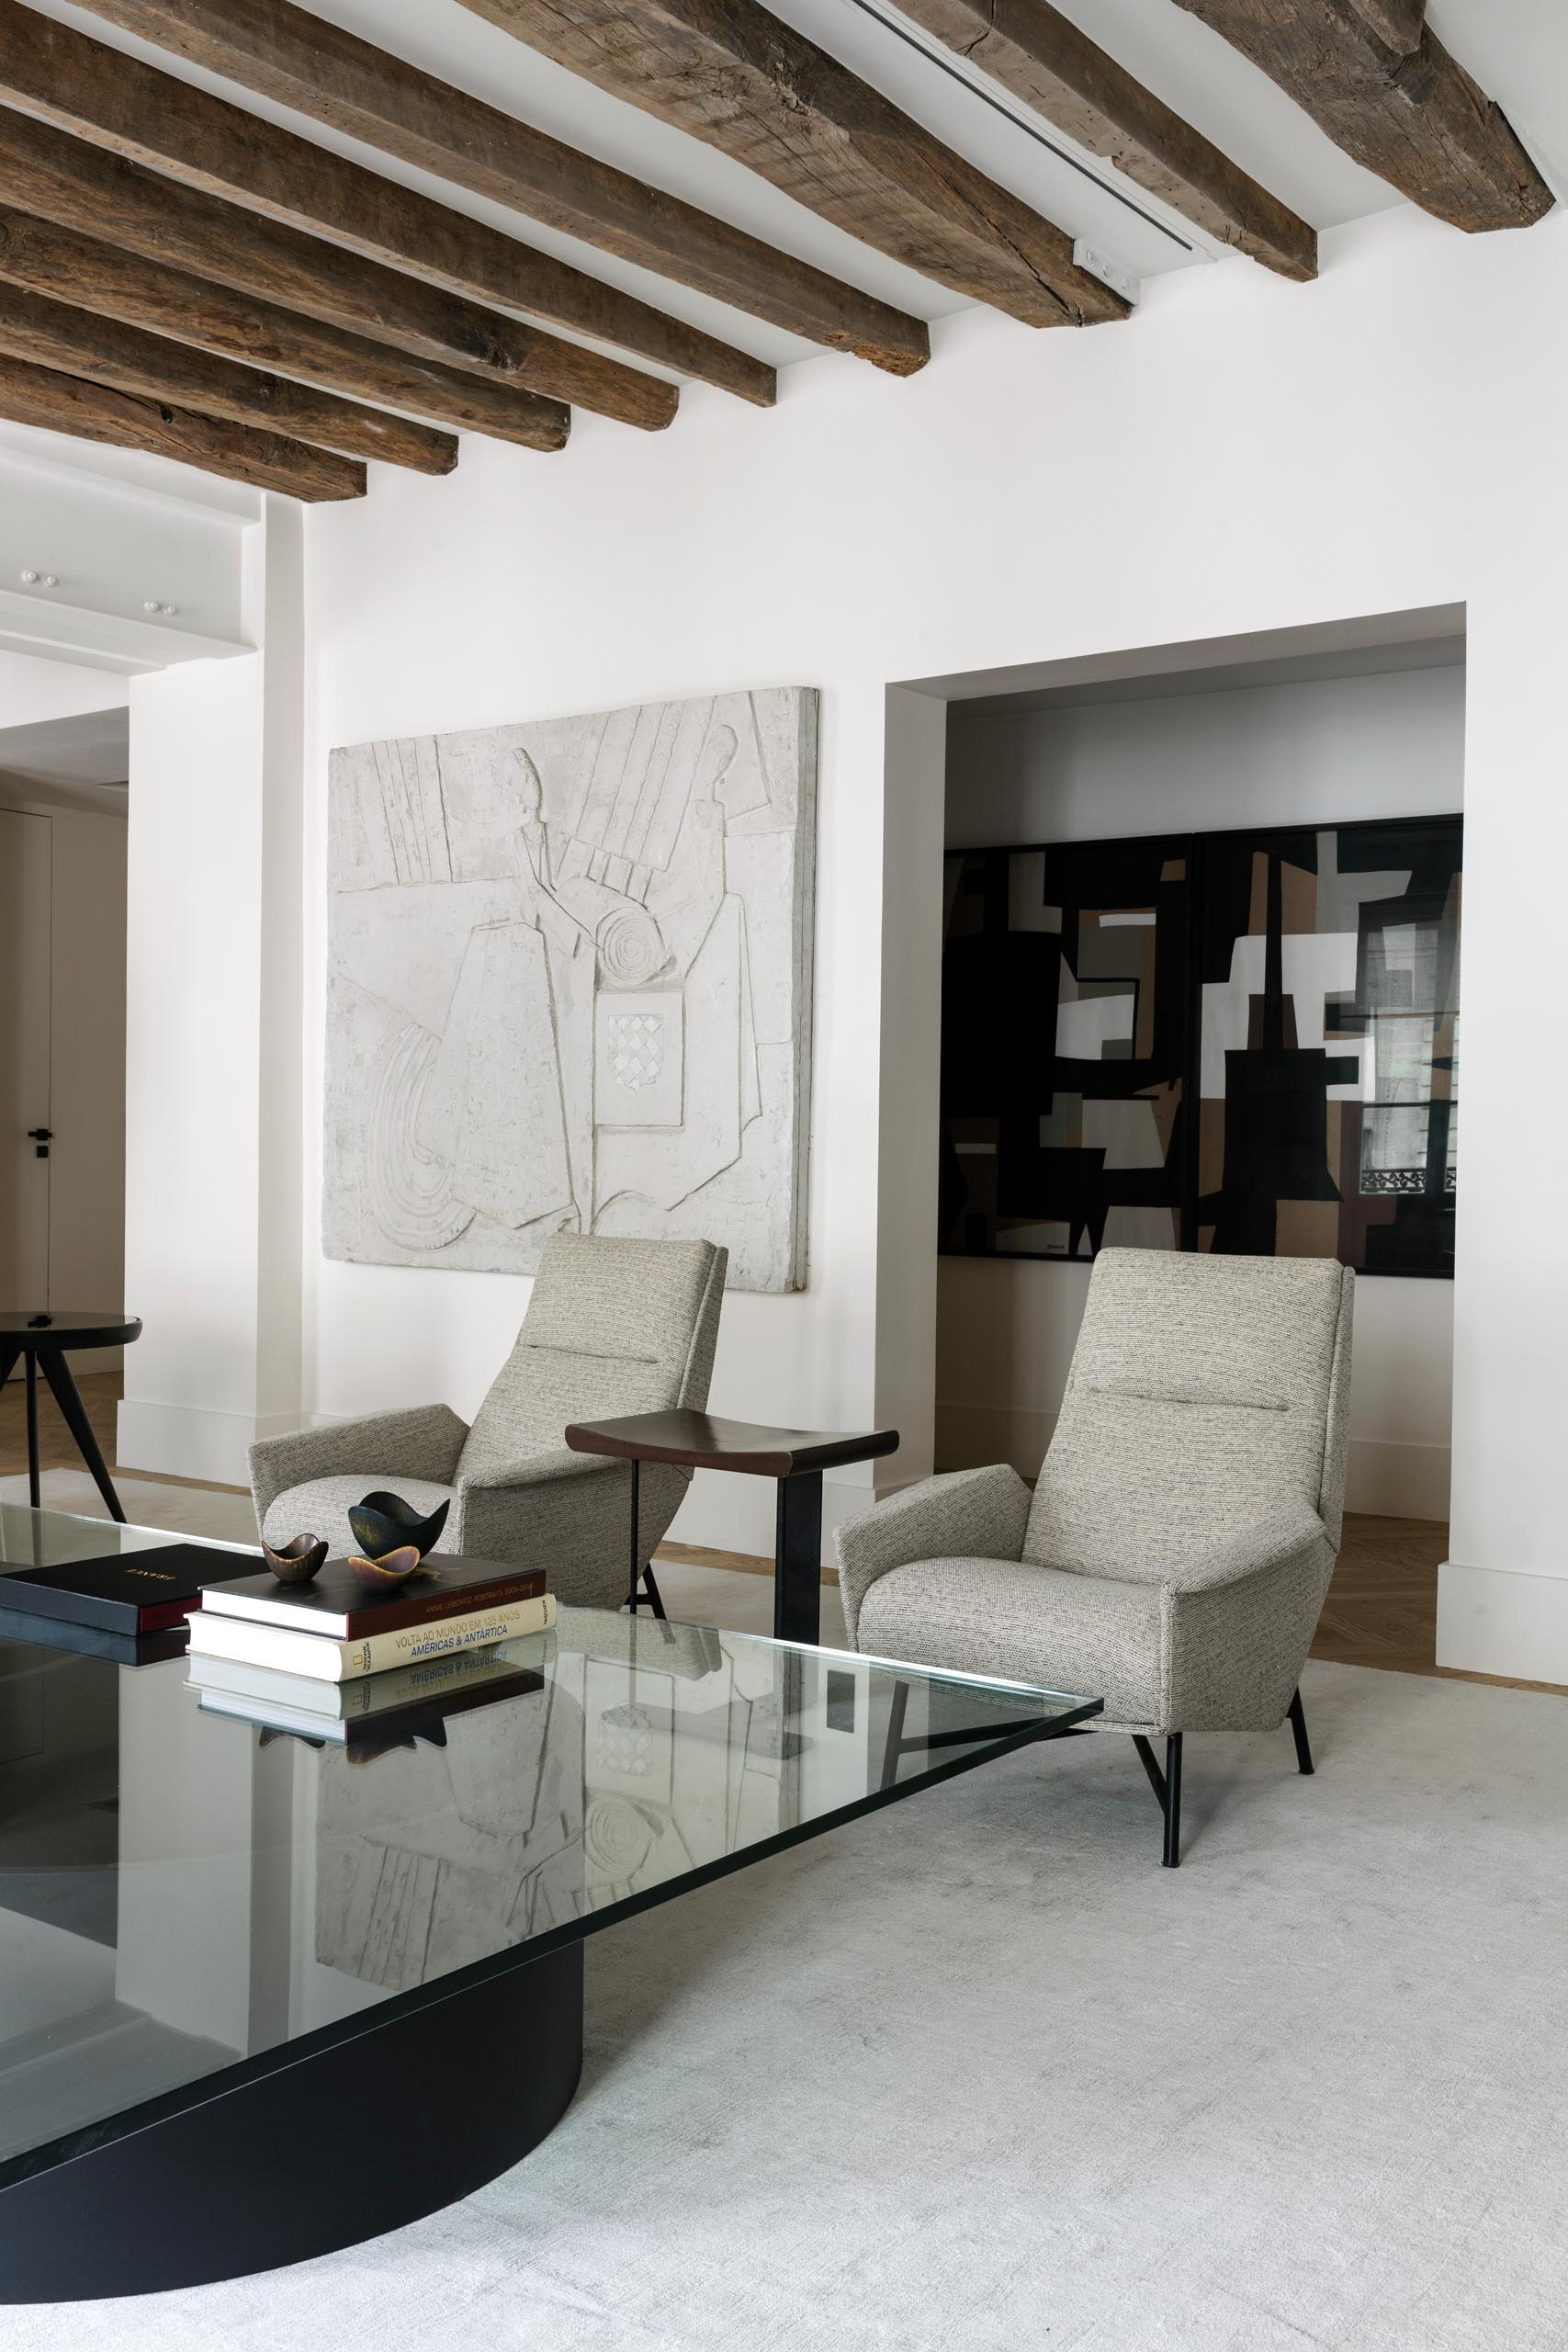 In this modern living room, neutral colored furniture creates a calm and relaxed environment.